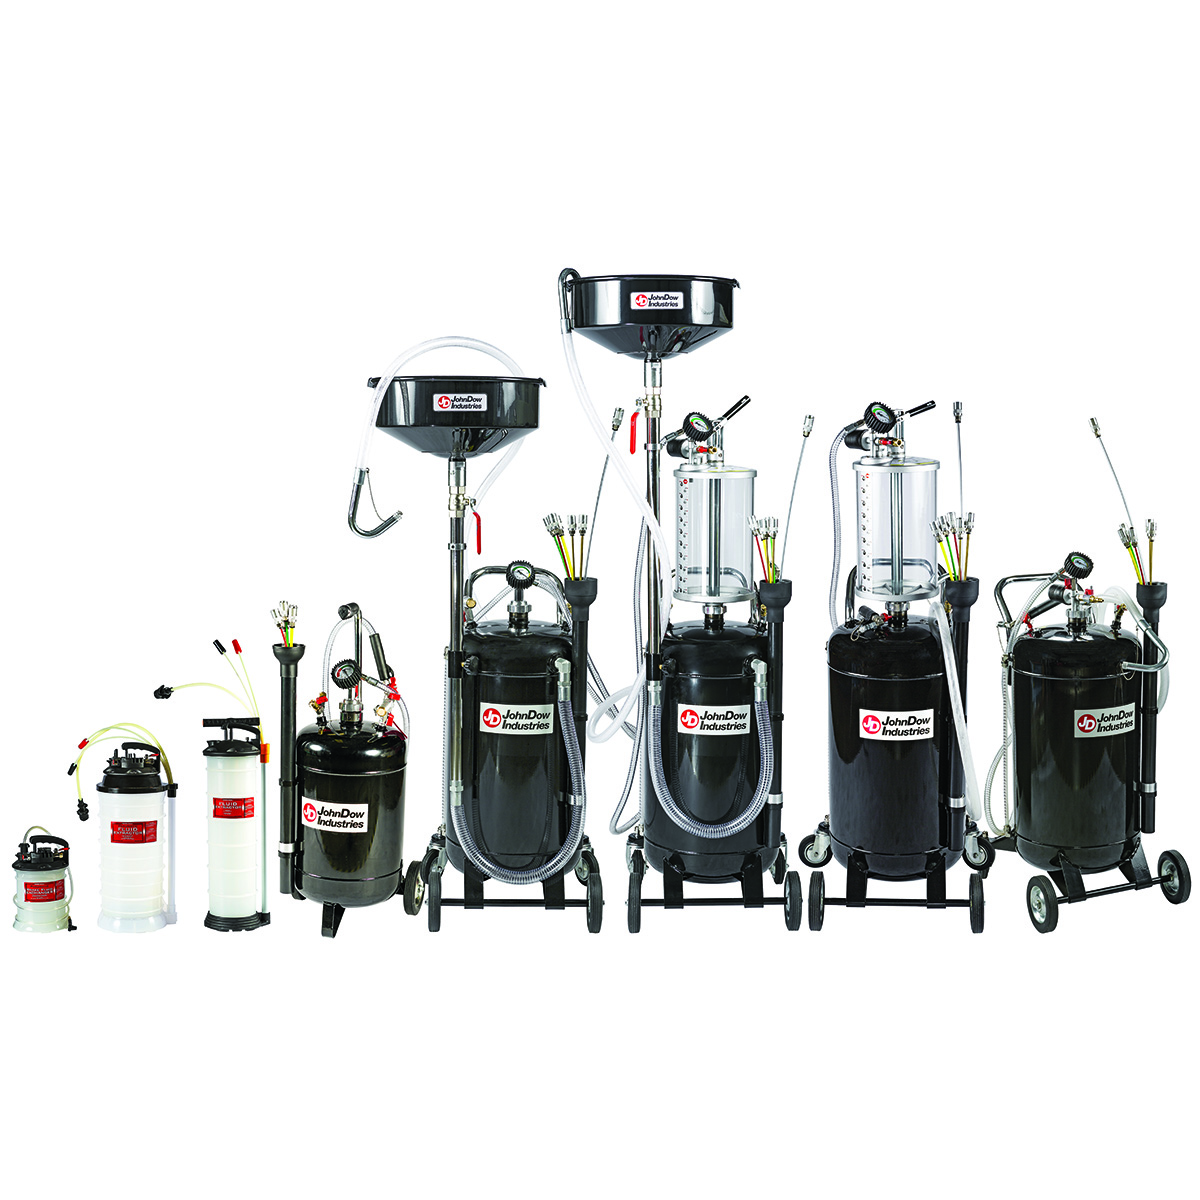 JohnDow Offers 3 New Fluid Extractors